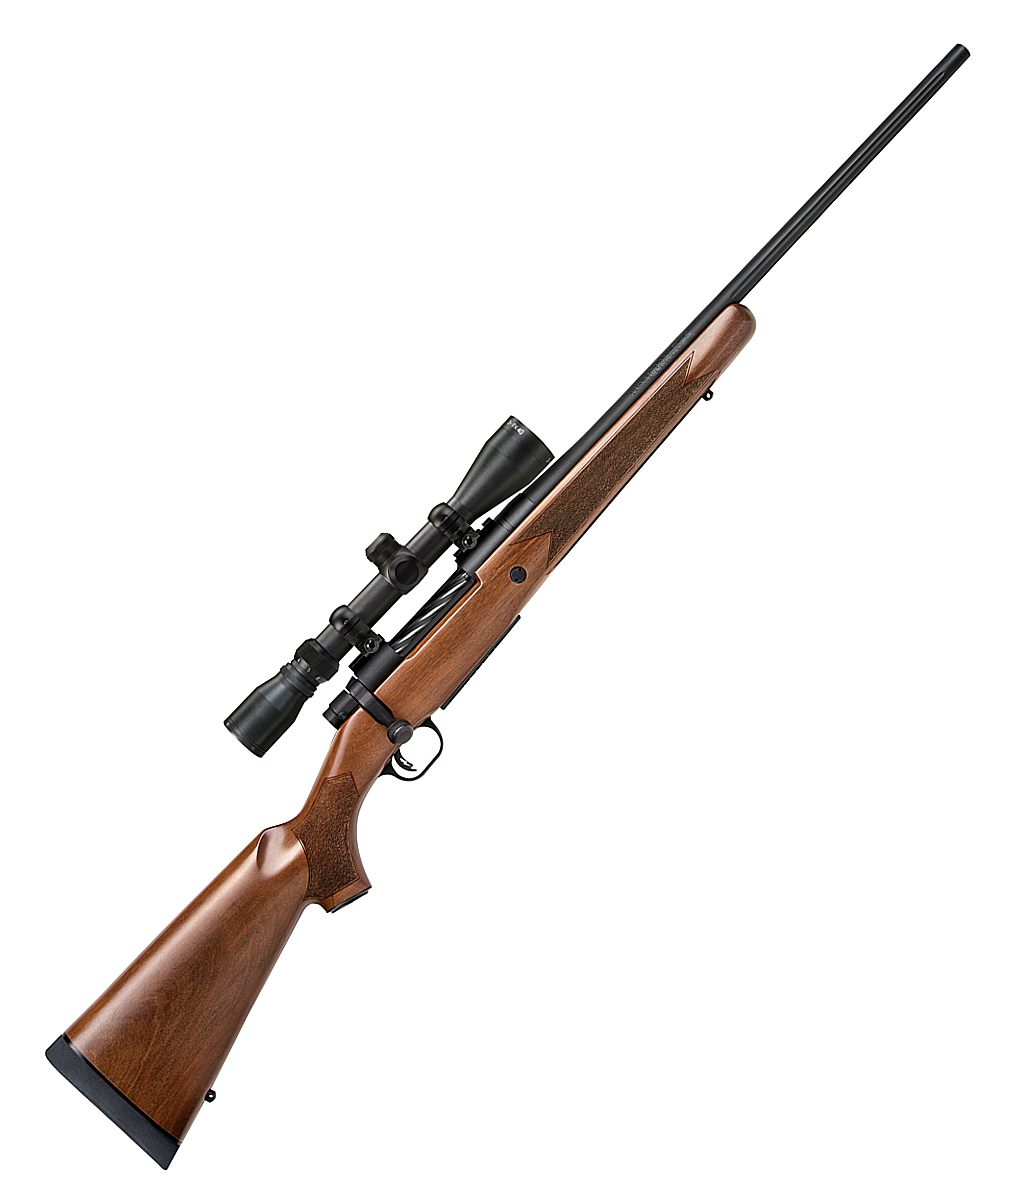 Mossberg Patriot Walnut With Scope 270 Win Doctor Deals